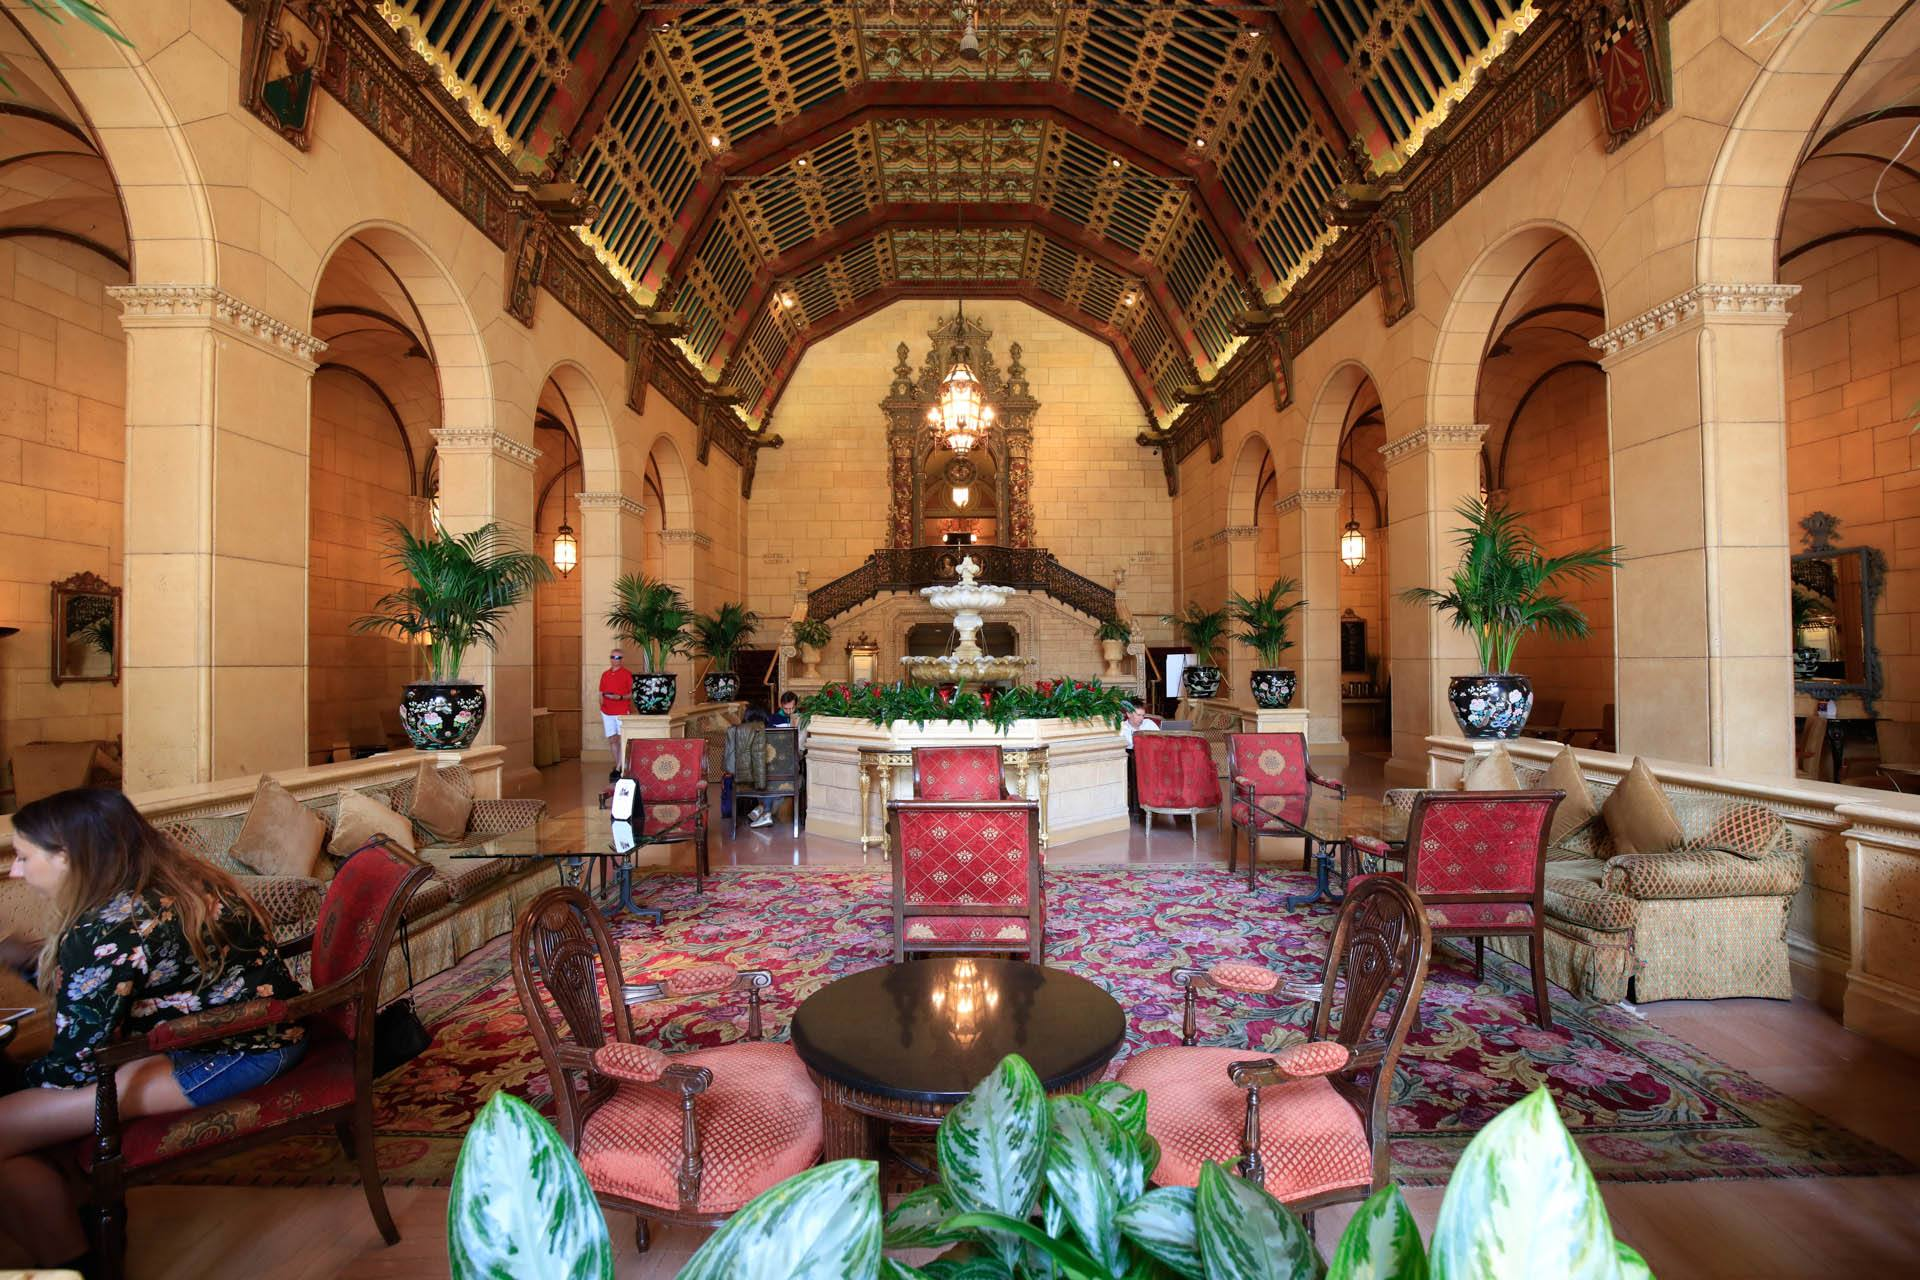 Rendezvous Court at the Millennium Biltmore Hotel